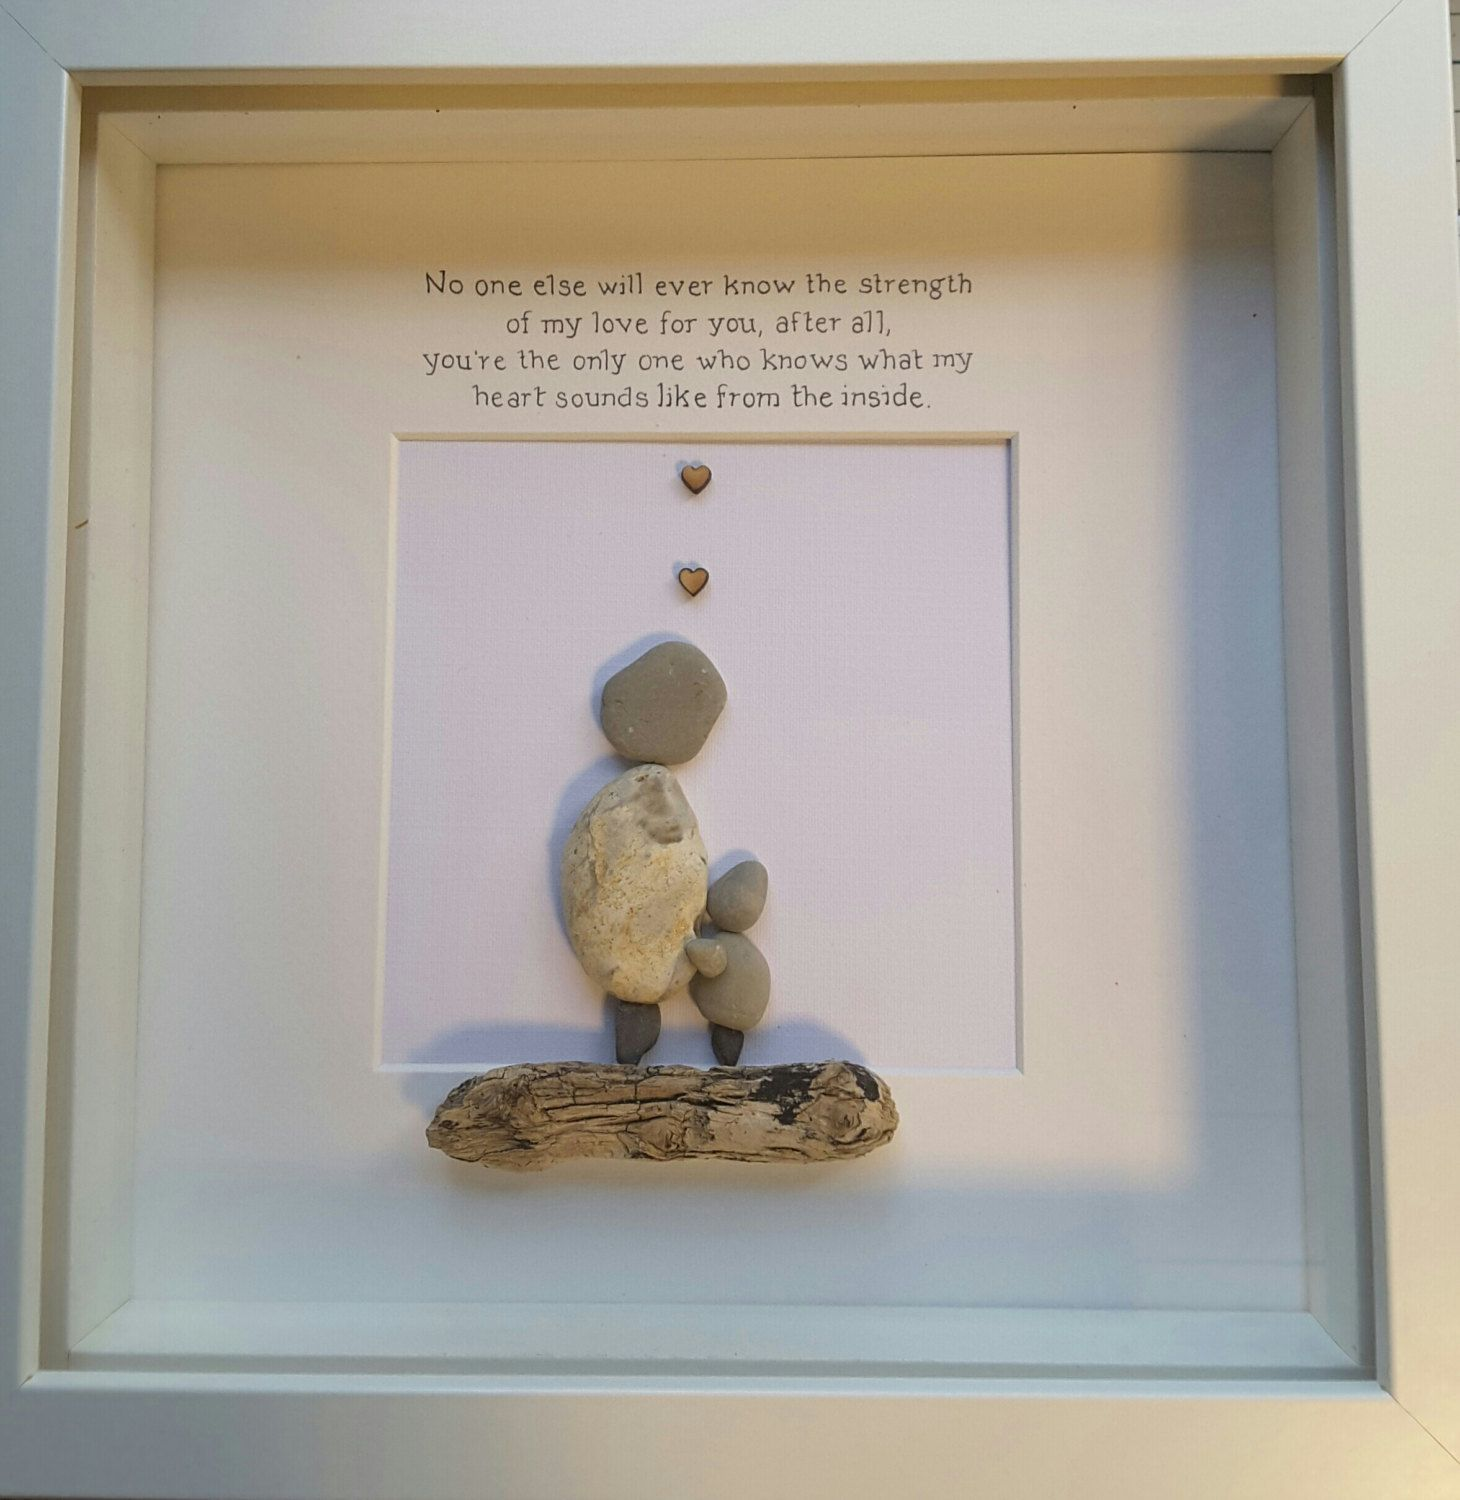 Mothers Day picture,Pebble picture,pebble art,wall Art,mothers day ideas,mum,mom,mama,mummy,nanny,granny,framed quotes,when I grow up by CoastalPebblesShop on Etsy